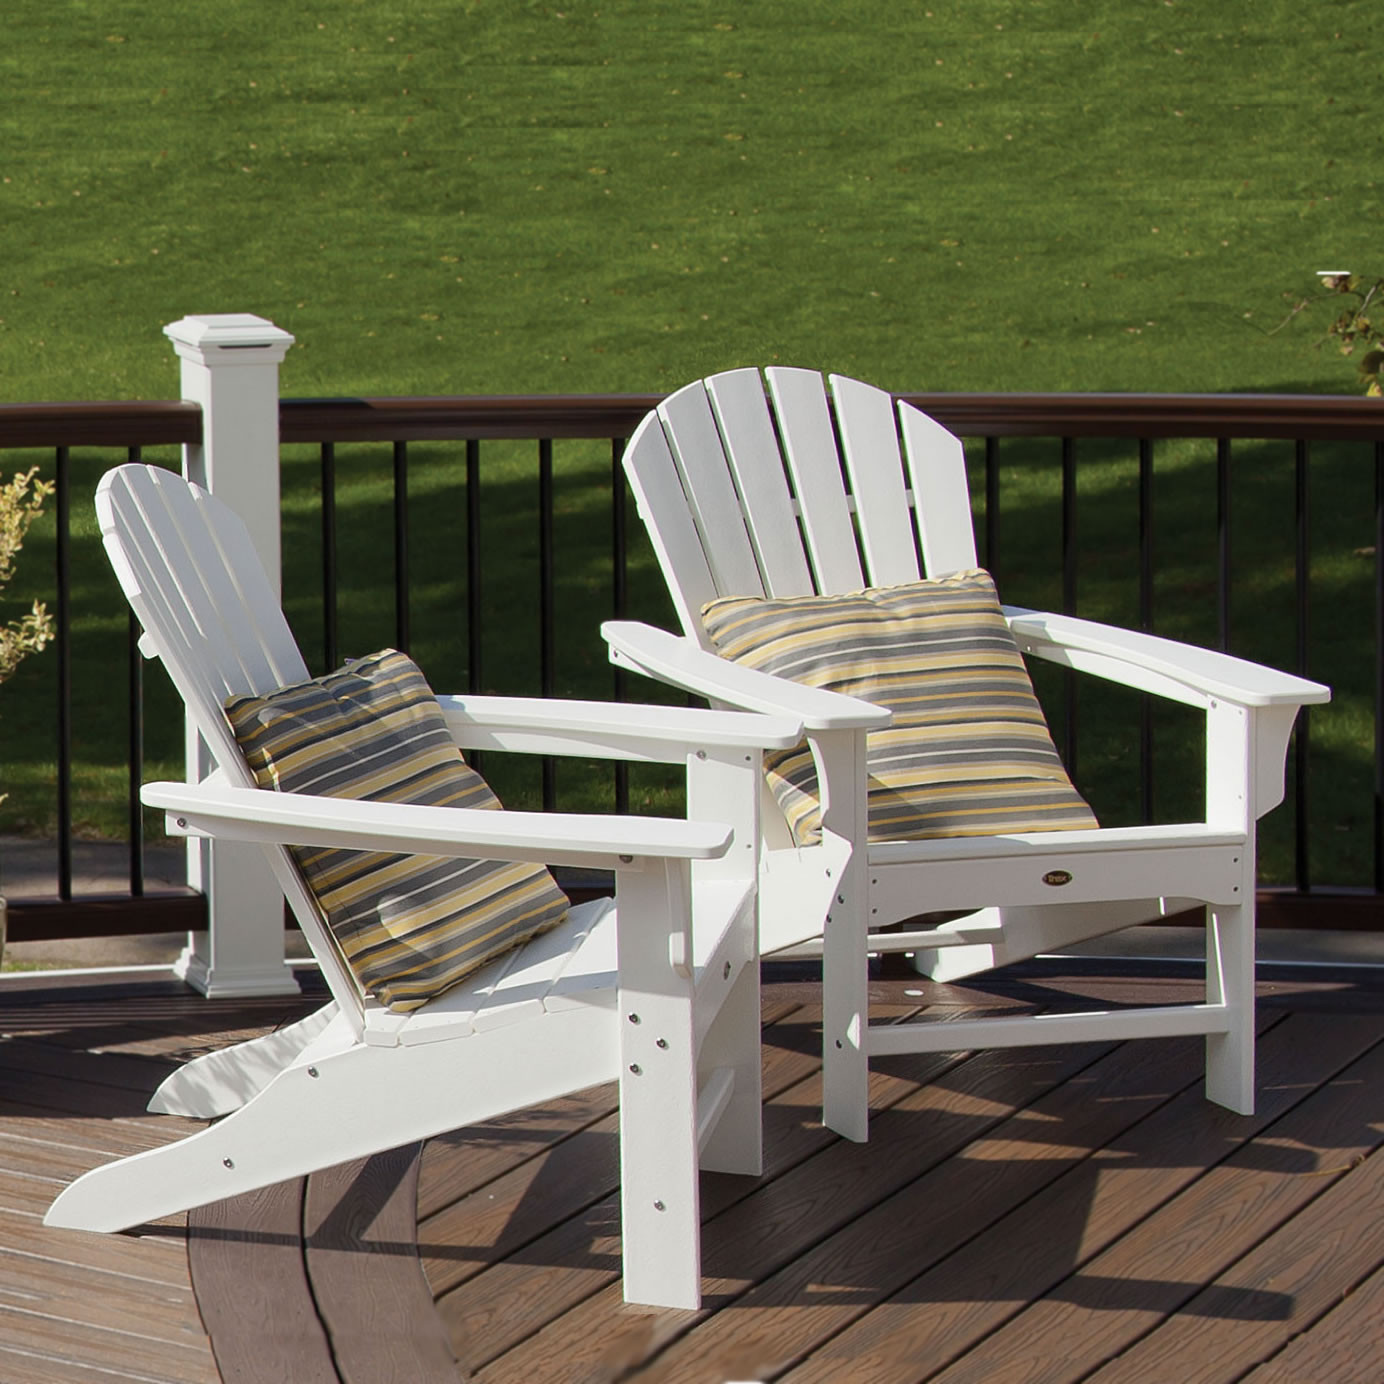 Outdoor Chairs Trex Outdoor Furniture Adirondack Chairs